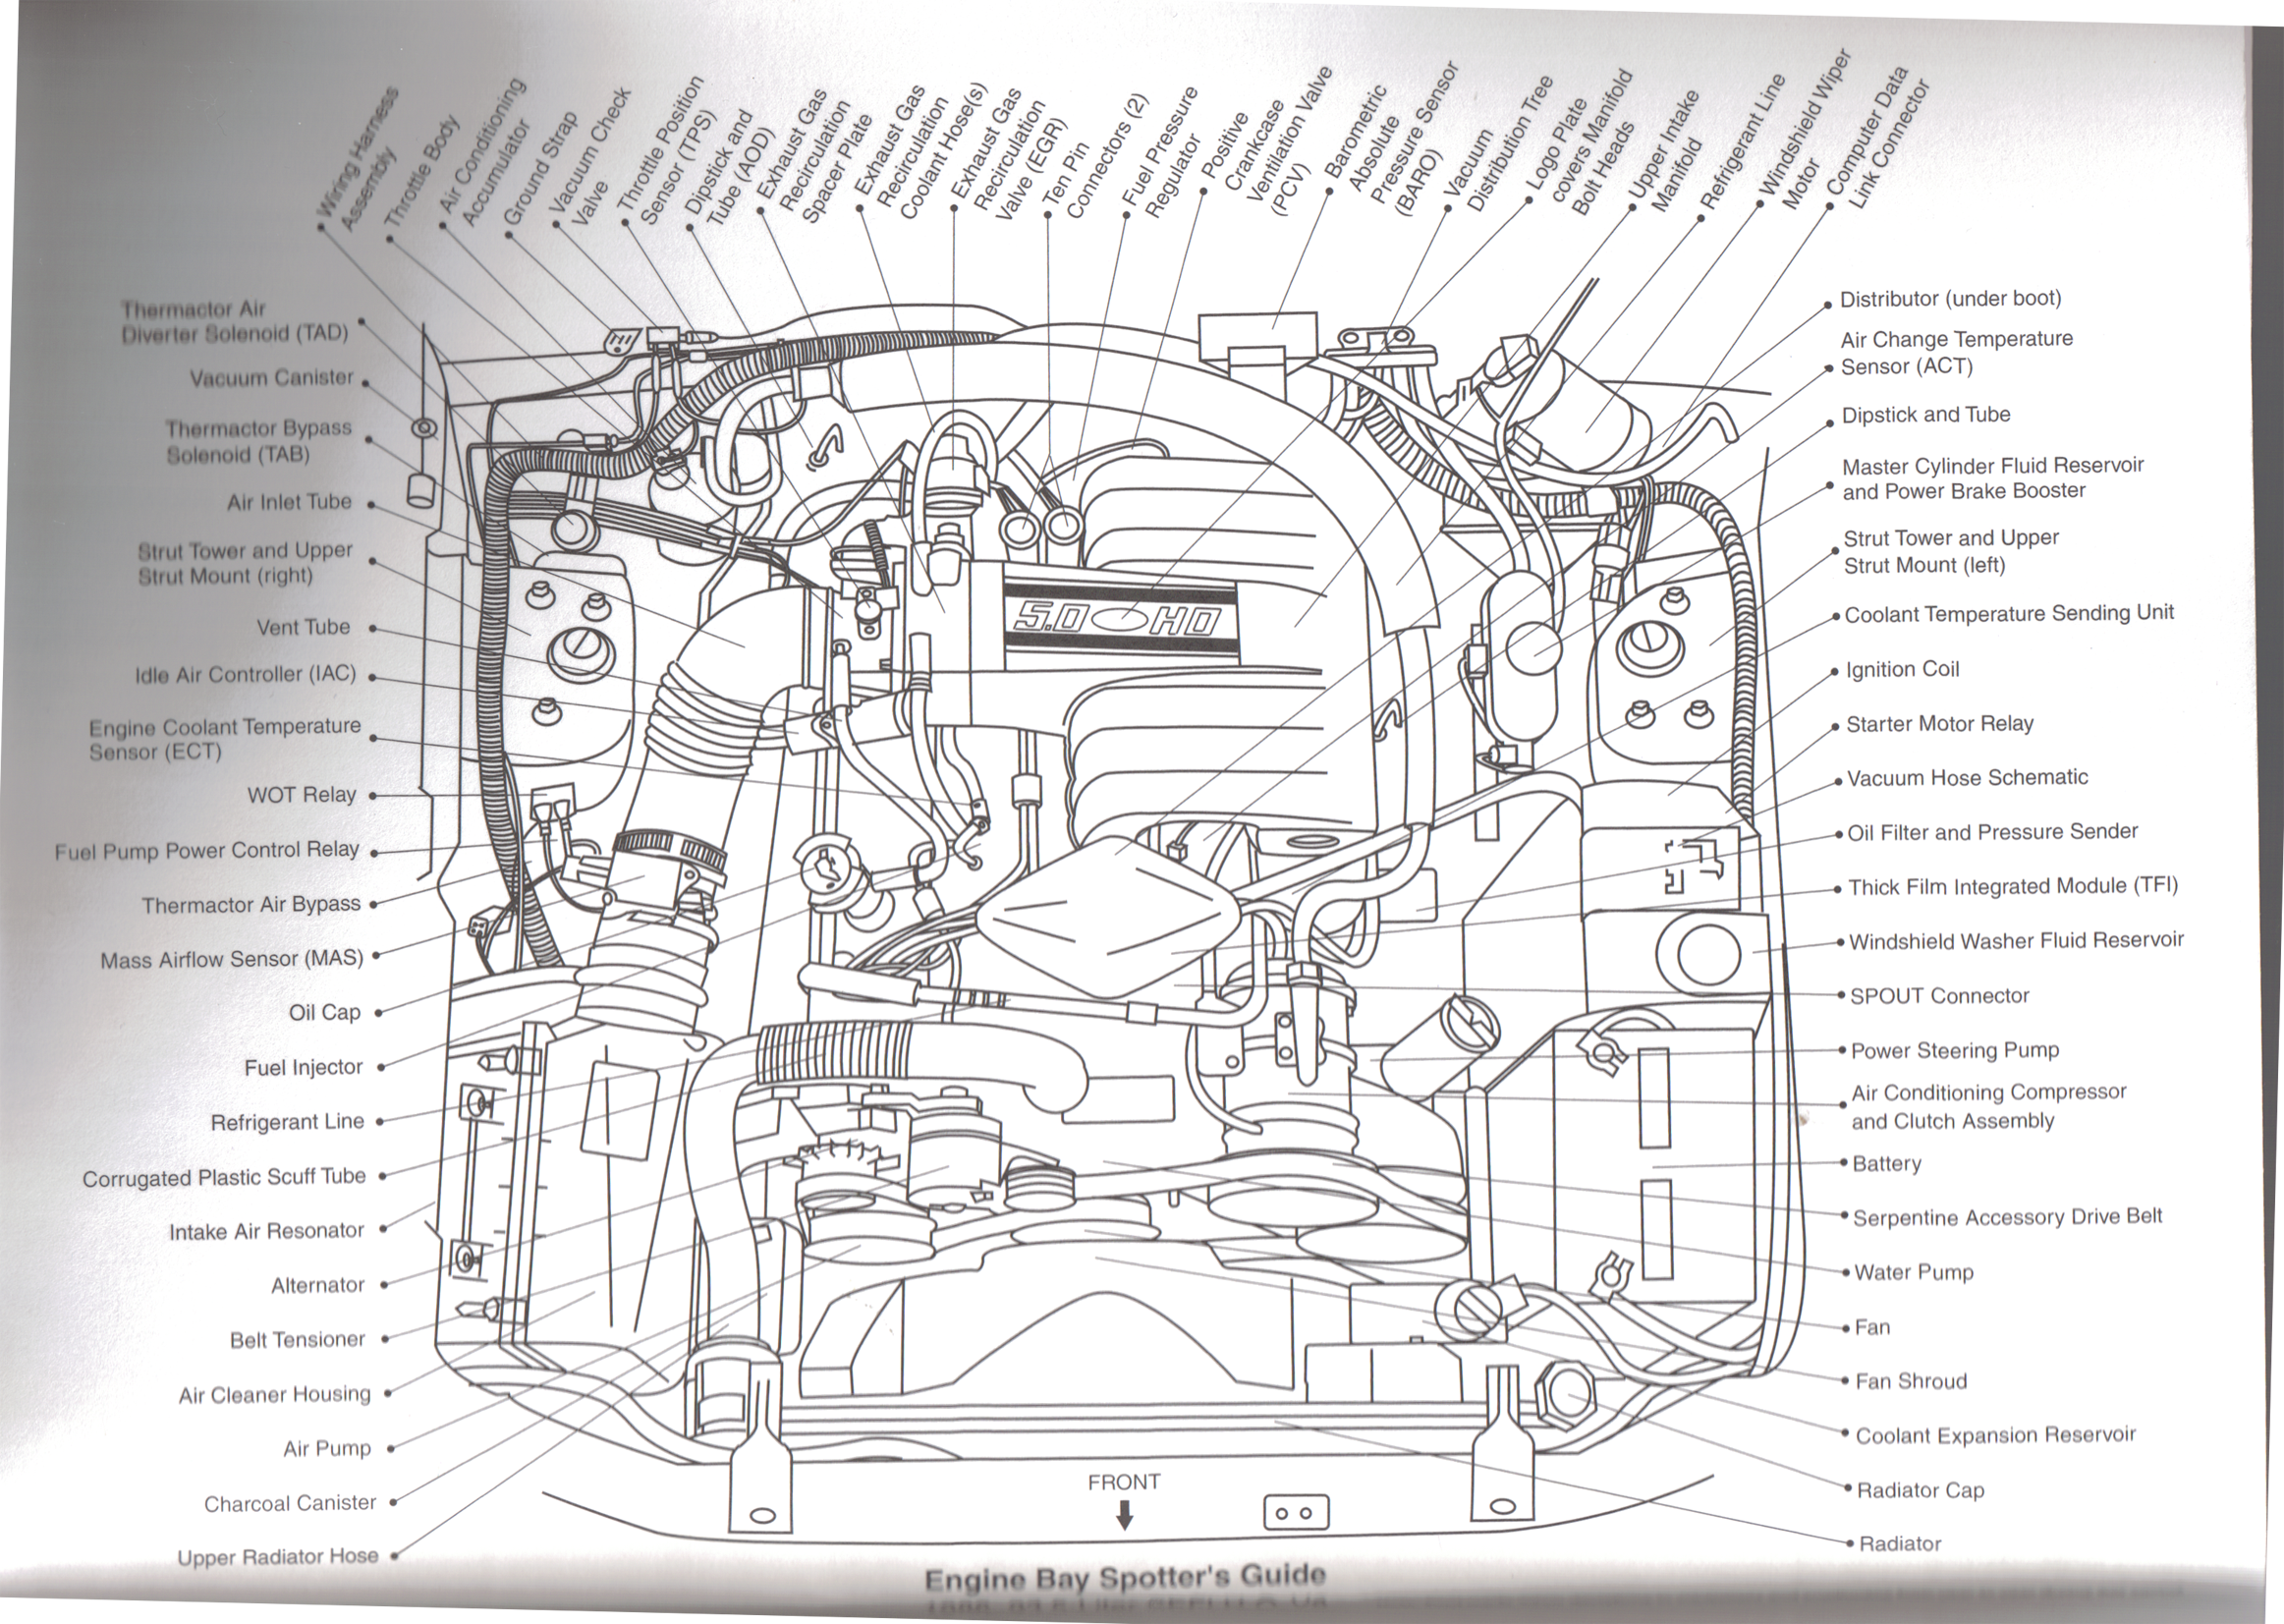 Ford Mustang Diagram | Schematic Diagram on 2012 camaro wiring diagram, 2012 mustang gt headlights, 2012 f-150 wiring diagram, 2012 mustang gt service manual, 2012 mustang gt engine, 2012 transit wiring diagram, 2012 ford wiring diagram, 2012 tahoe wiring diagram, 2012 mustang gt wheels, 2012 mustang gt accessories, 2012 charger wiring diagram, 2012 mustang gt power steering, 2012 impala wiring diagram, 2012 mustang gt speaker size, 2012 f350 wiring diagram, 2012 mustang gt drive shaft, 2012 mustang gt suspension, 2012 mustang gt antenna, 2012 f250 wiring diagram, 2012 mustang gt brakes,